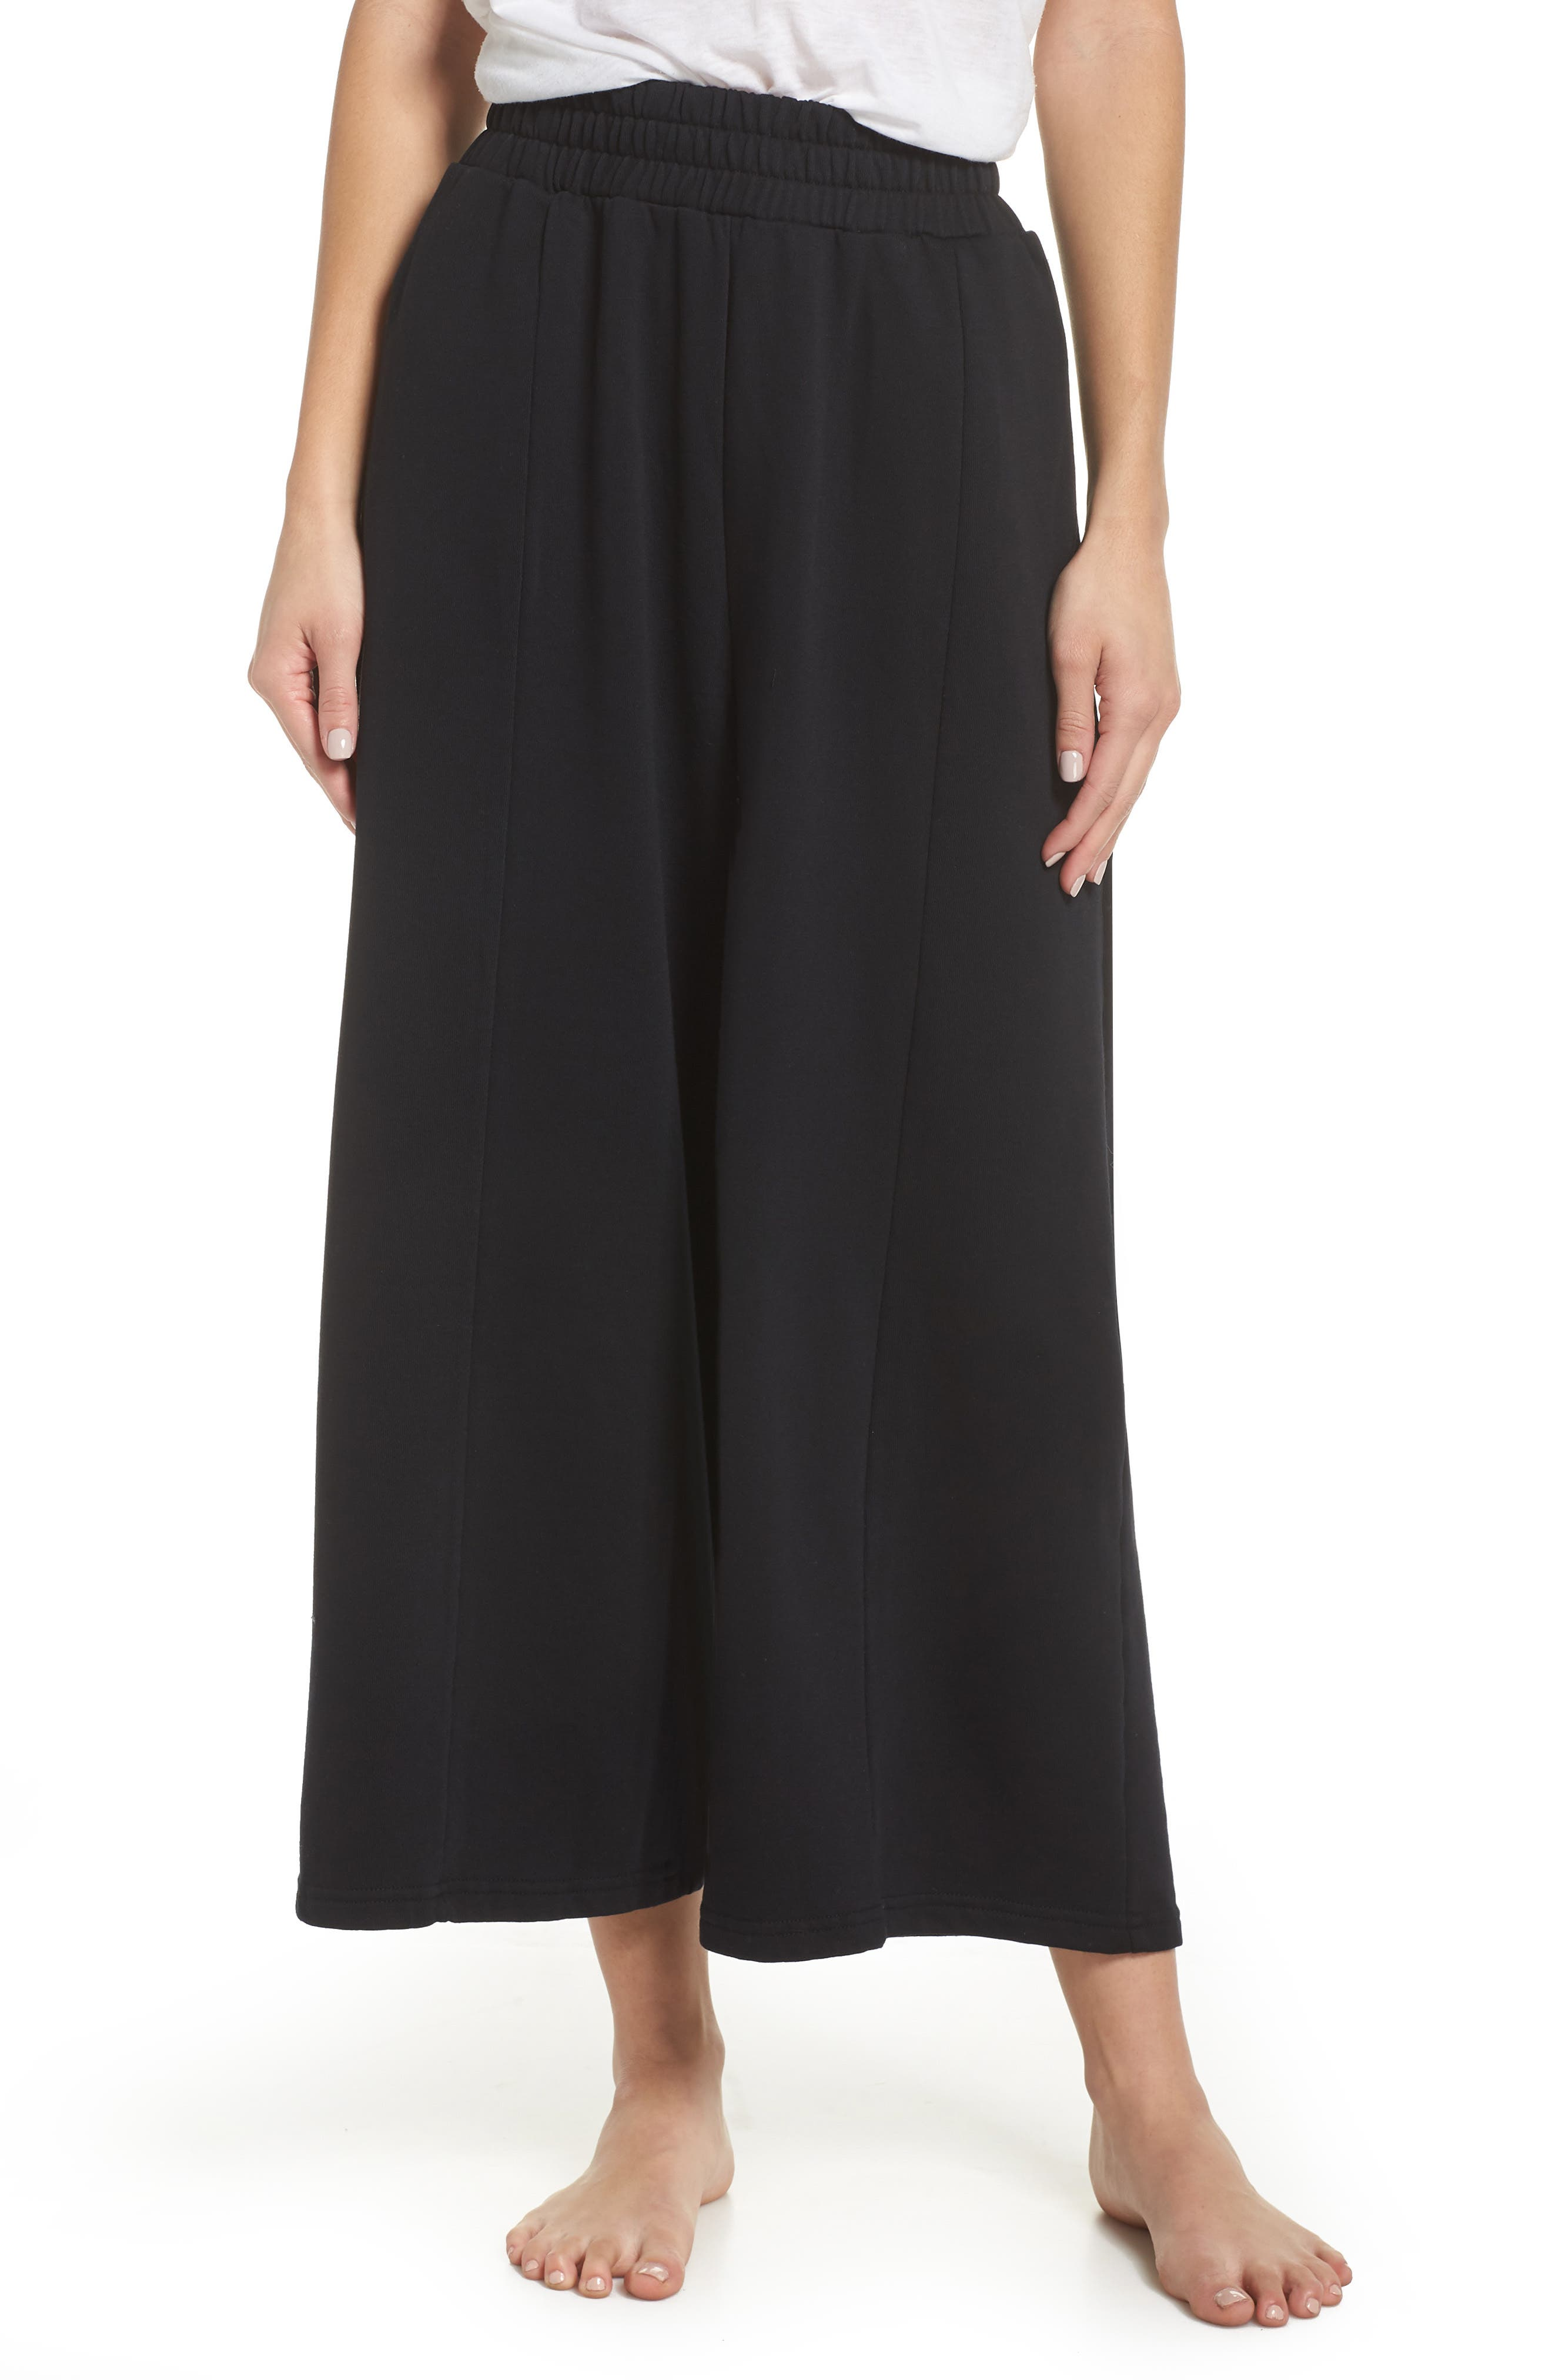 THE LAUNDRY ROOM Flare Leg Crop Pants in Black